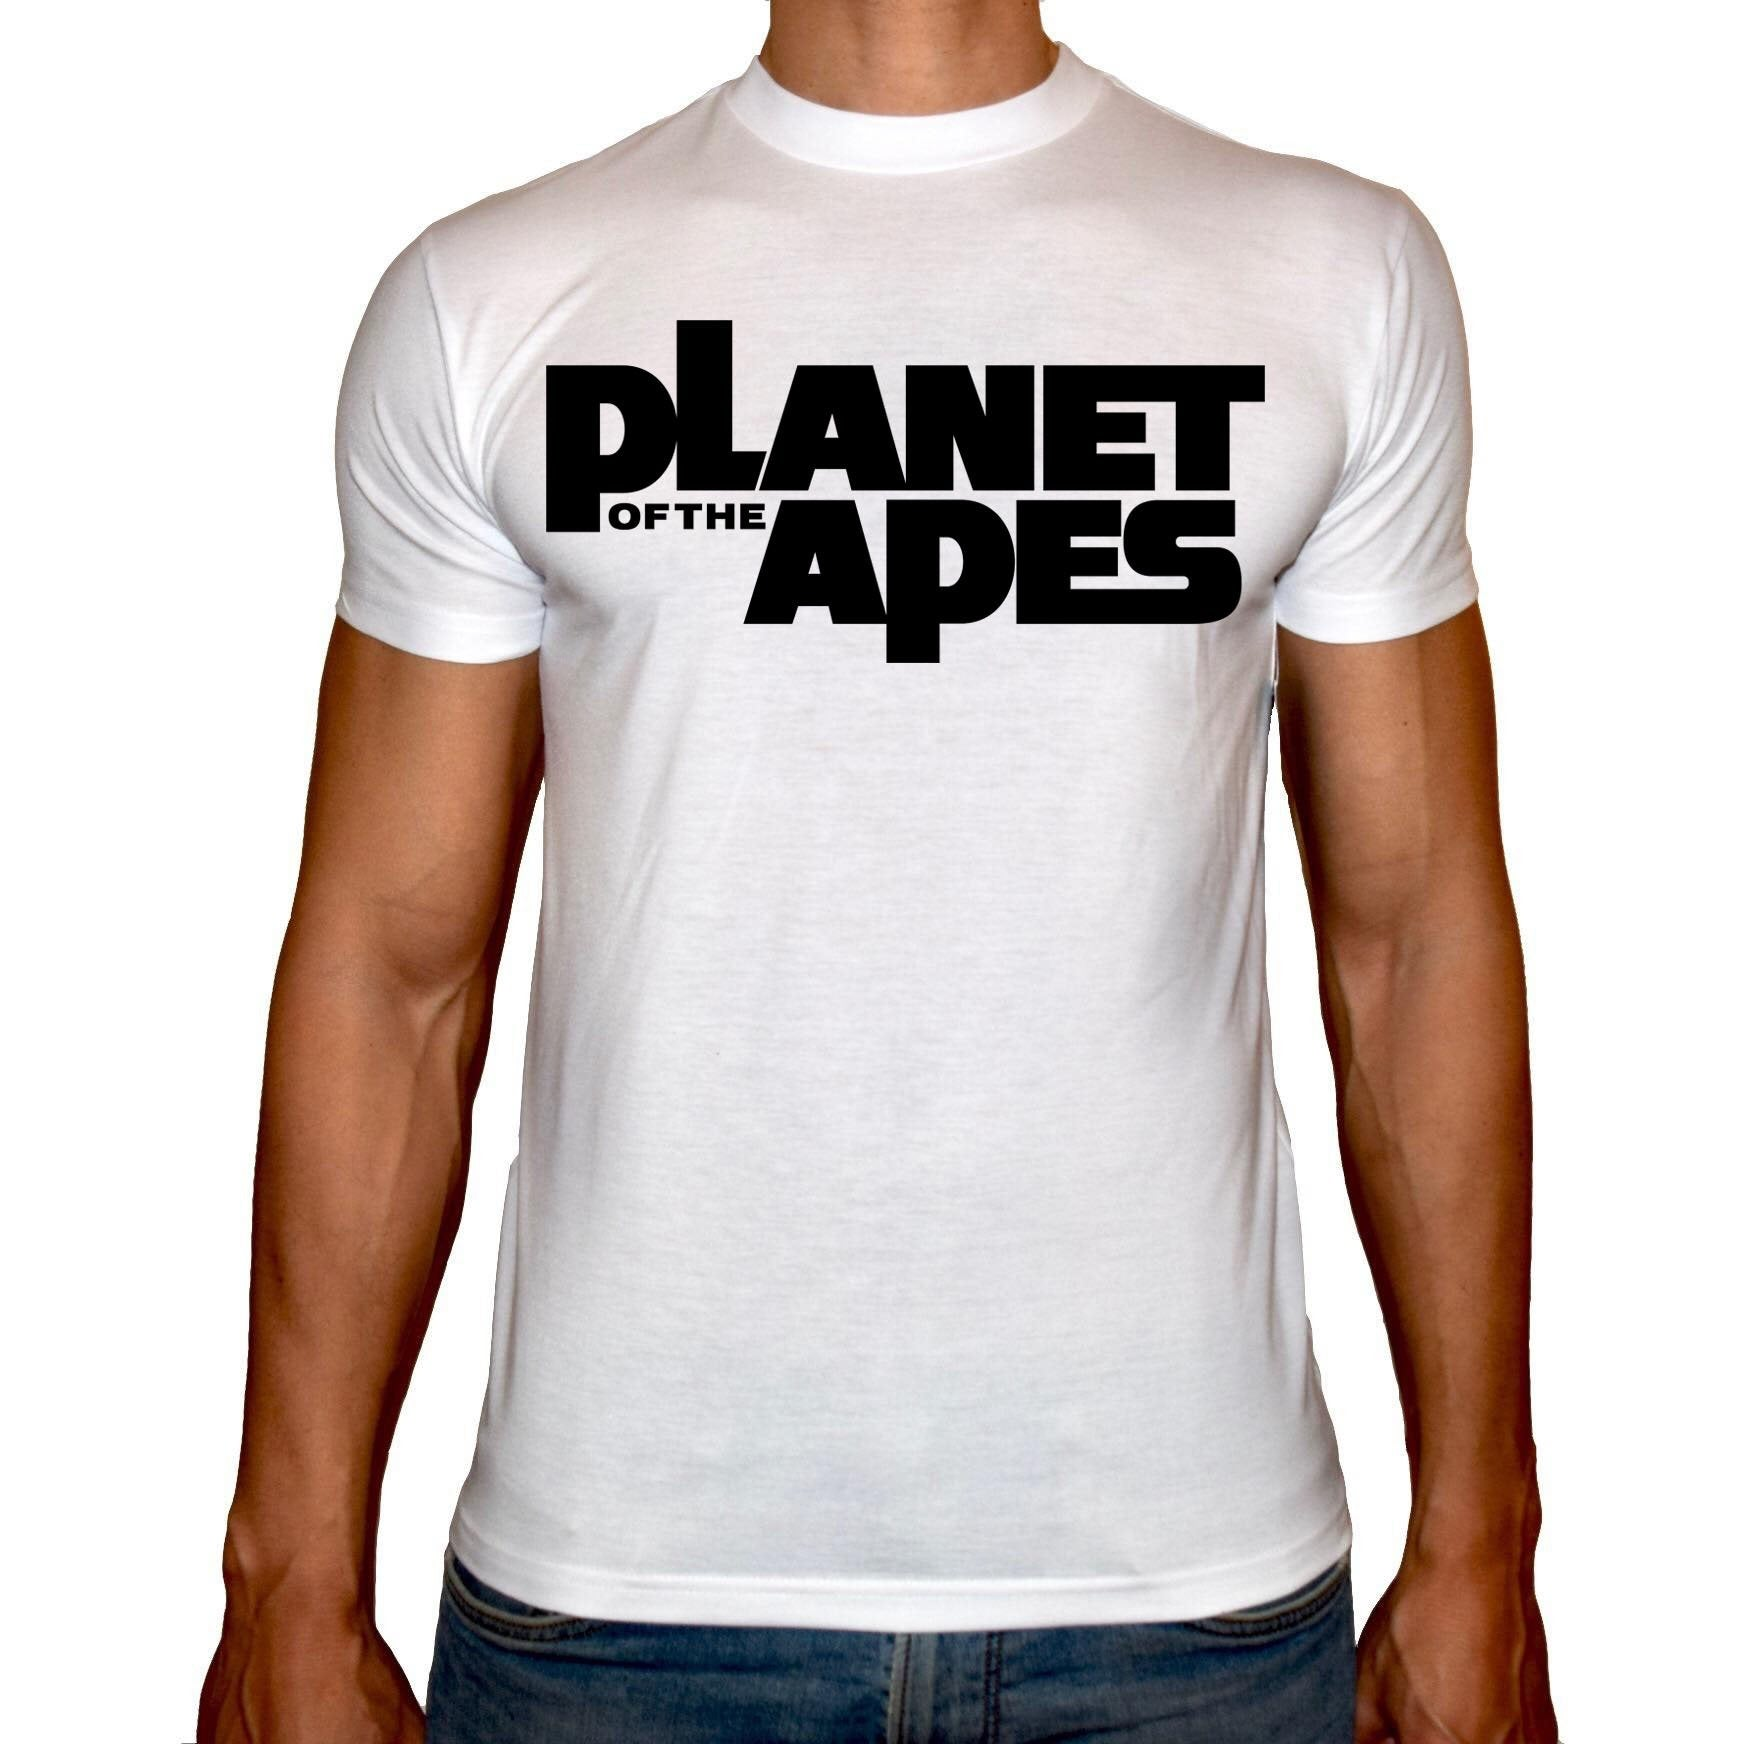 Phoenix WHITE Round Neck Printed T-Shirt Men (Planet of the apes)